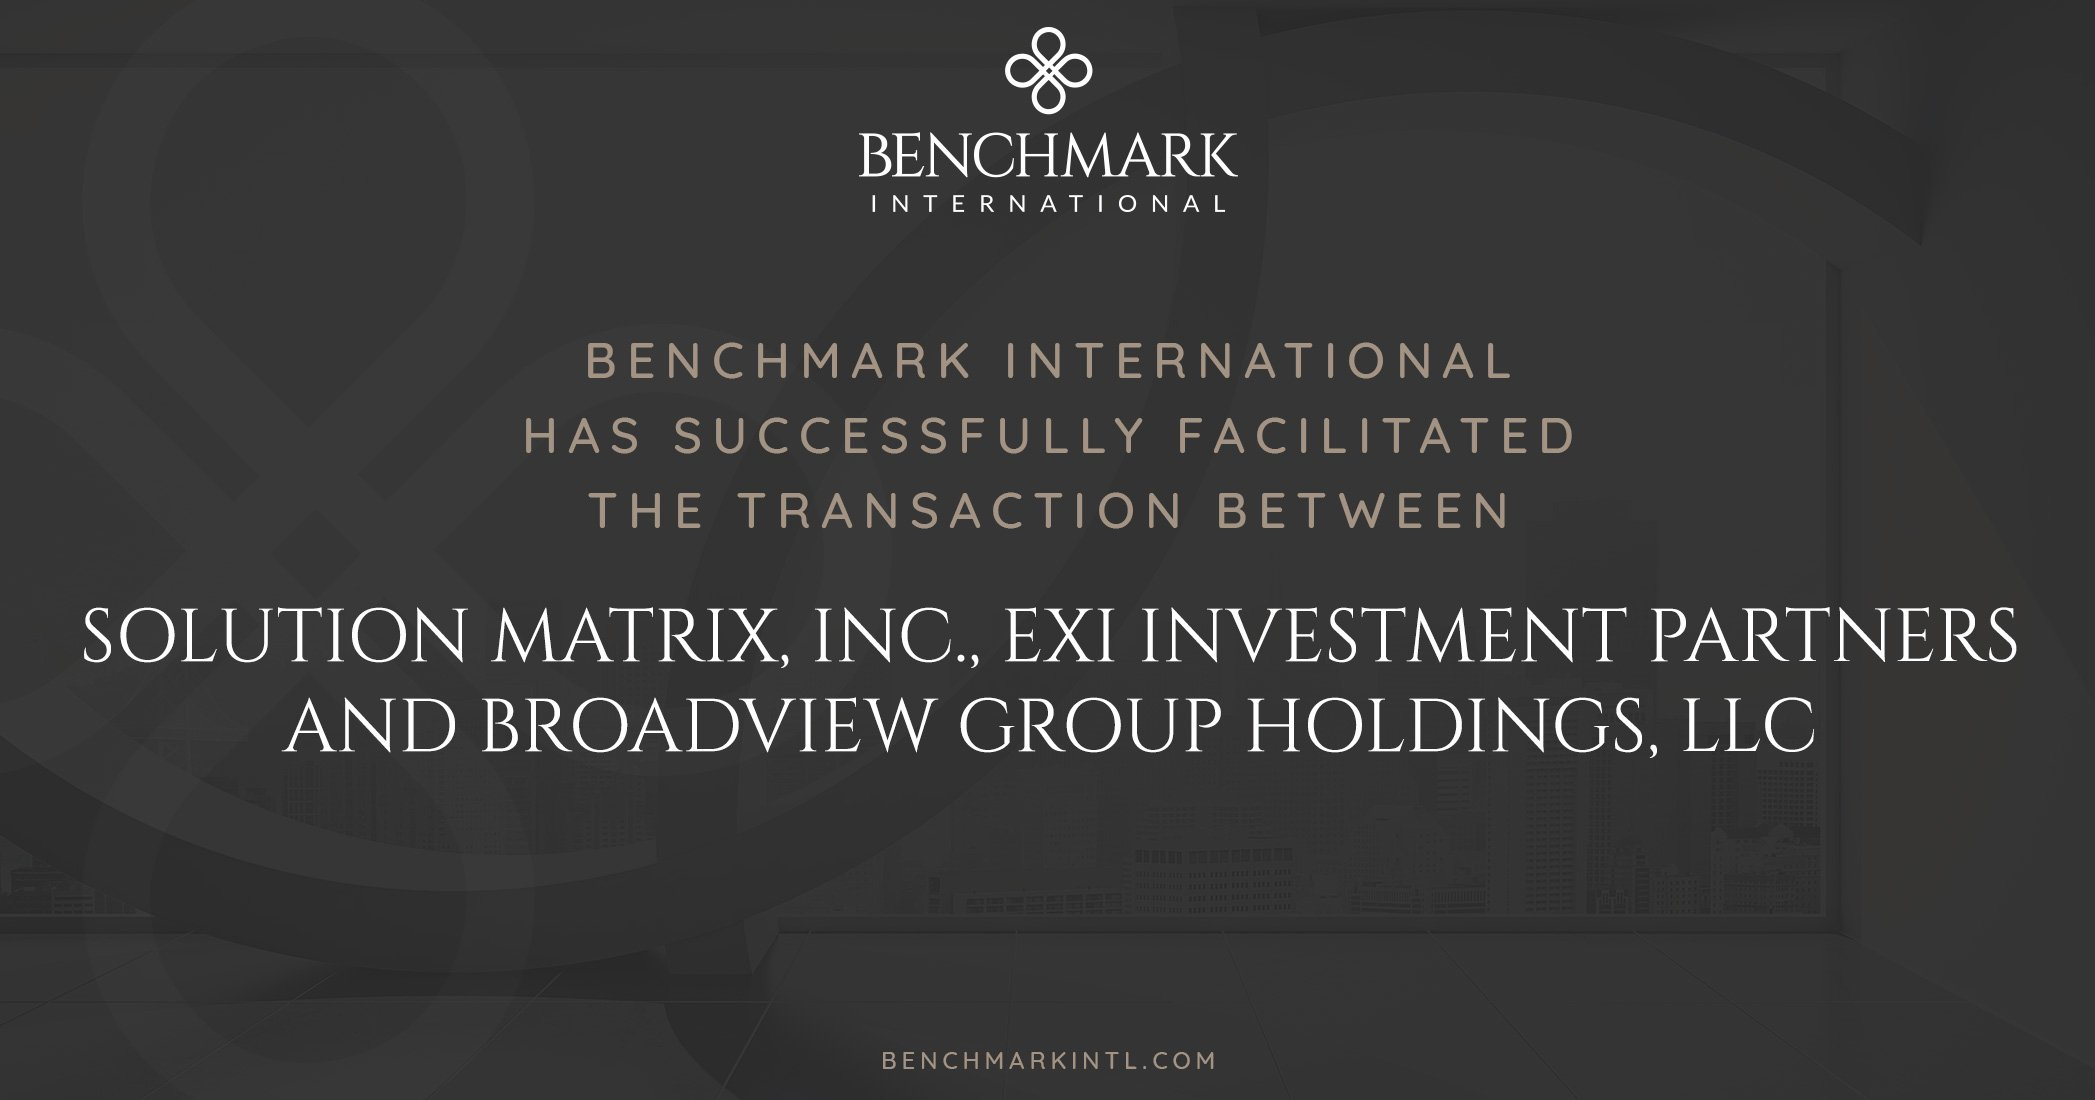 Benchmark International Successfully Facilitated the Transaction Between Solution Matrix, Inc., EXI Investment Partners and Broadview Group Holdings, LLC